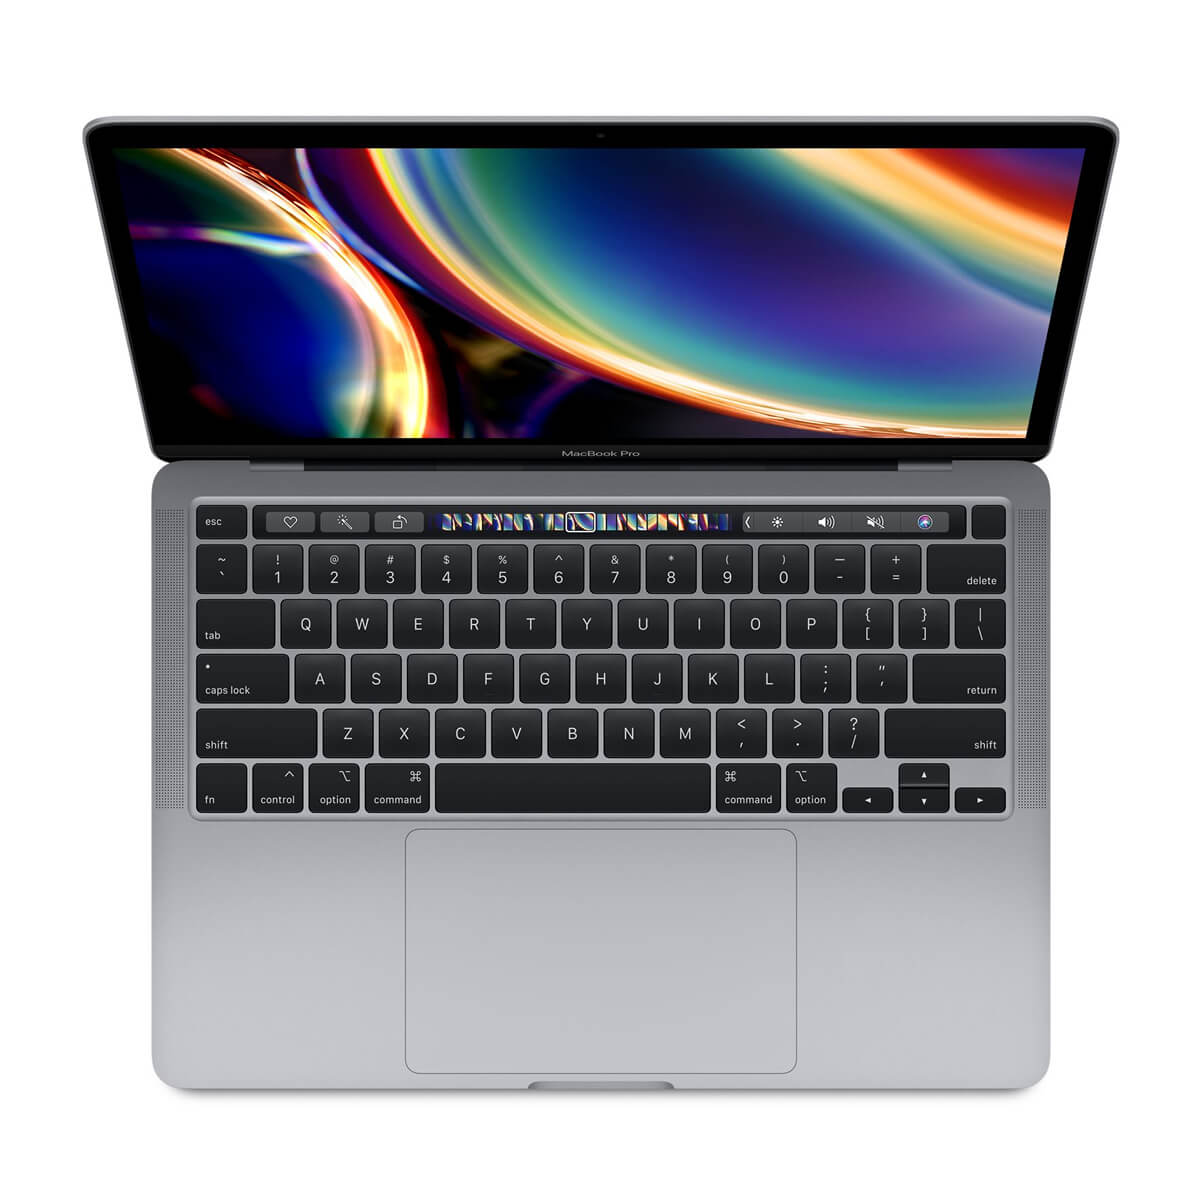 MacBook Pro 13-inch Space Gray 2.0GHz 512GB SSD TouchBar with Backlit Magic Keyboard